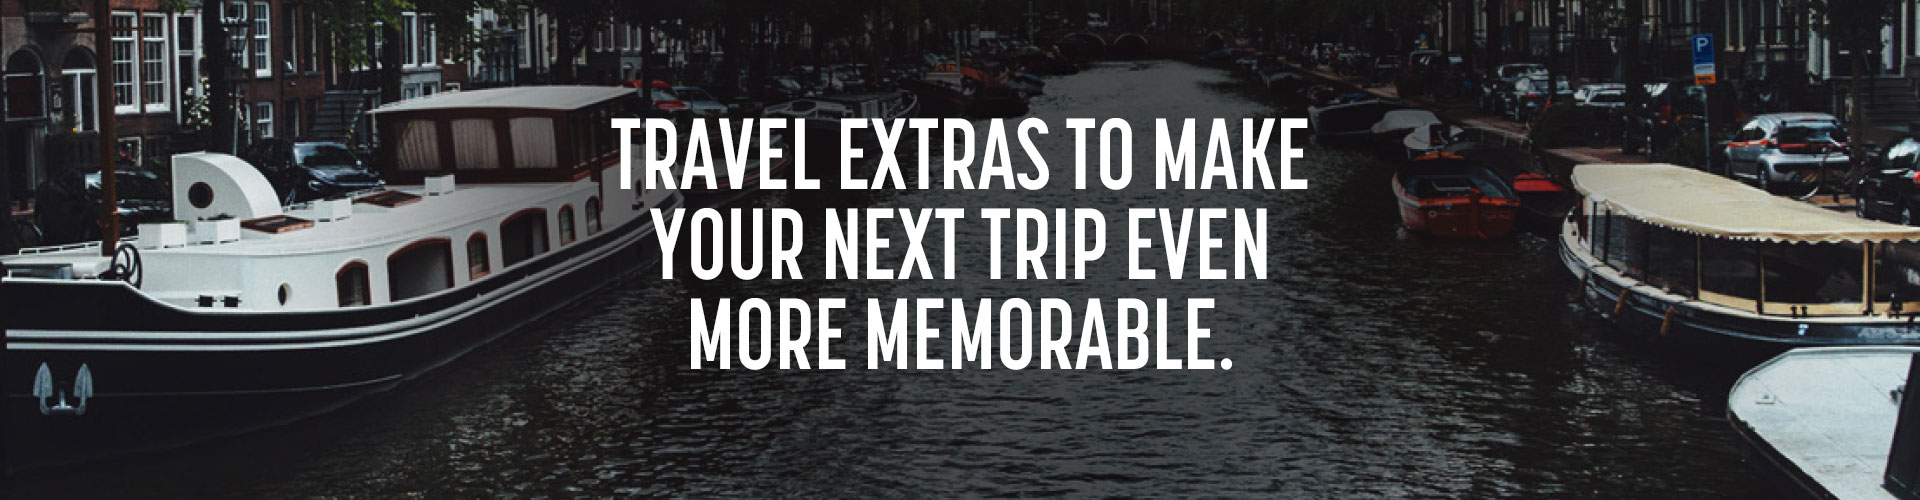 Travel extras to make your next trip even more memorable.